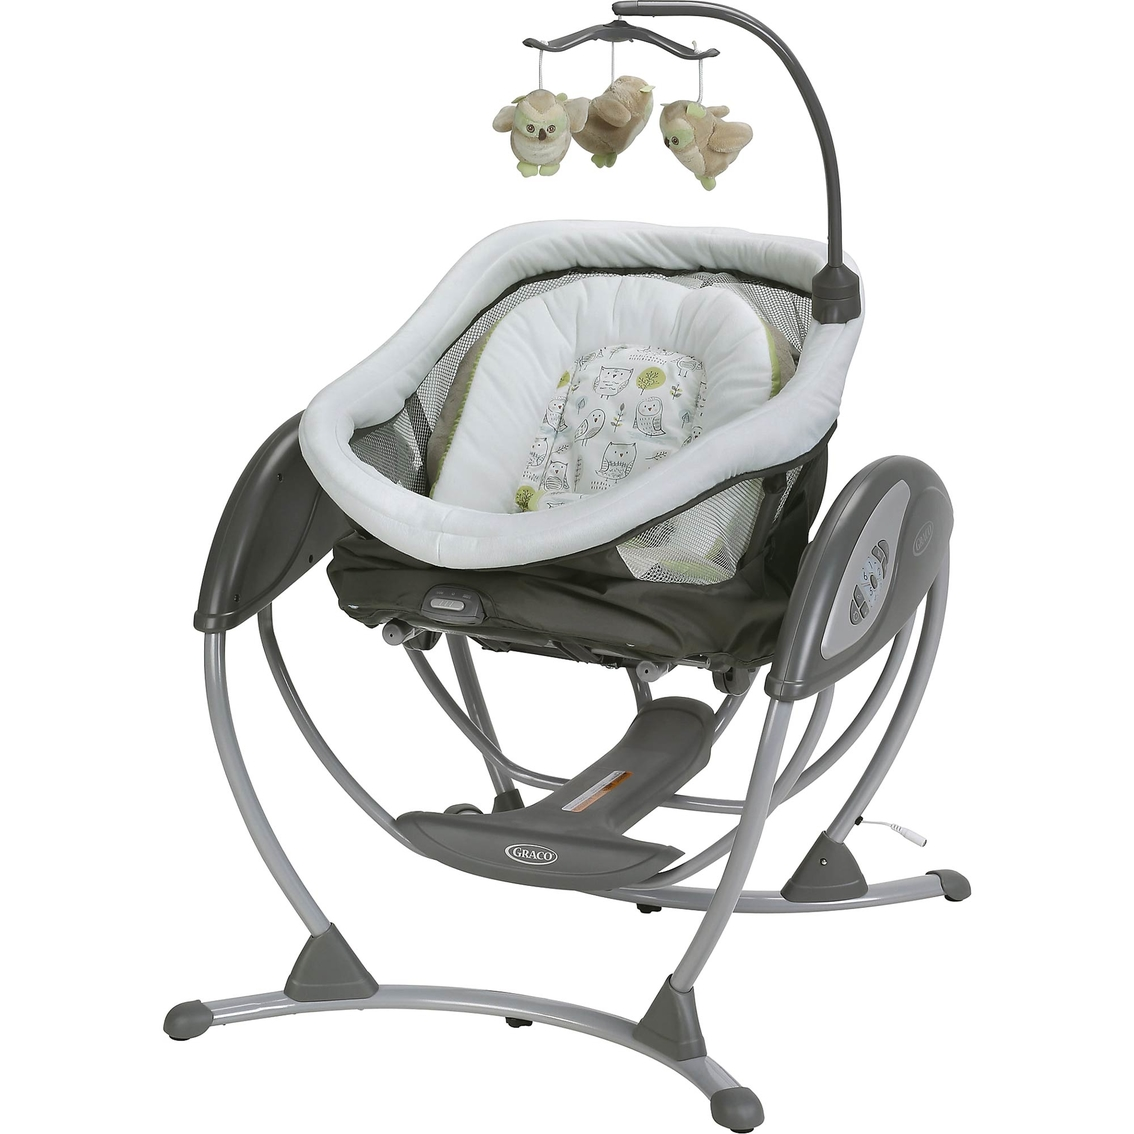 Majestic Graco Dreamglider Gliding Swing Percy Graco Dreamglider Gliding Swing Percy Swings Bouncers Graco Baby Monitors Troubleshooting Graco Baby Monitor Battery baby Graco Baby Monitor